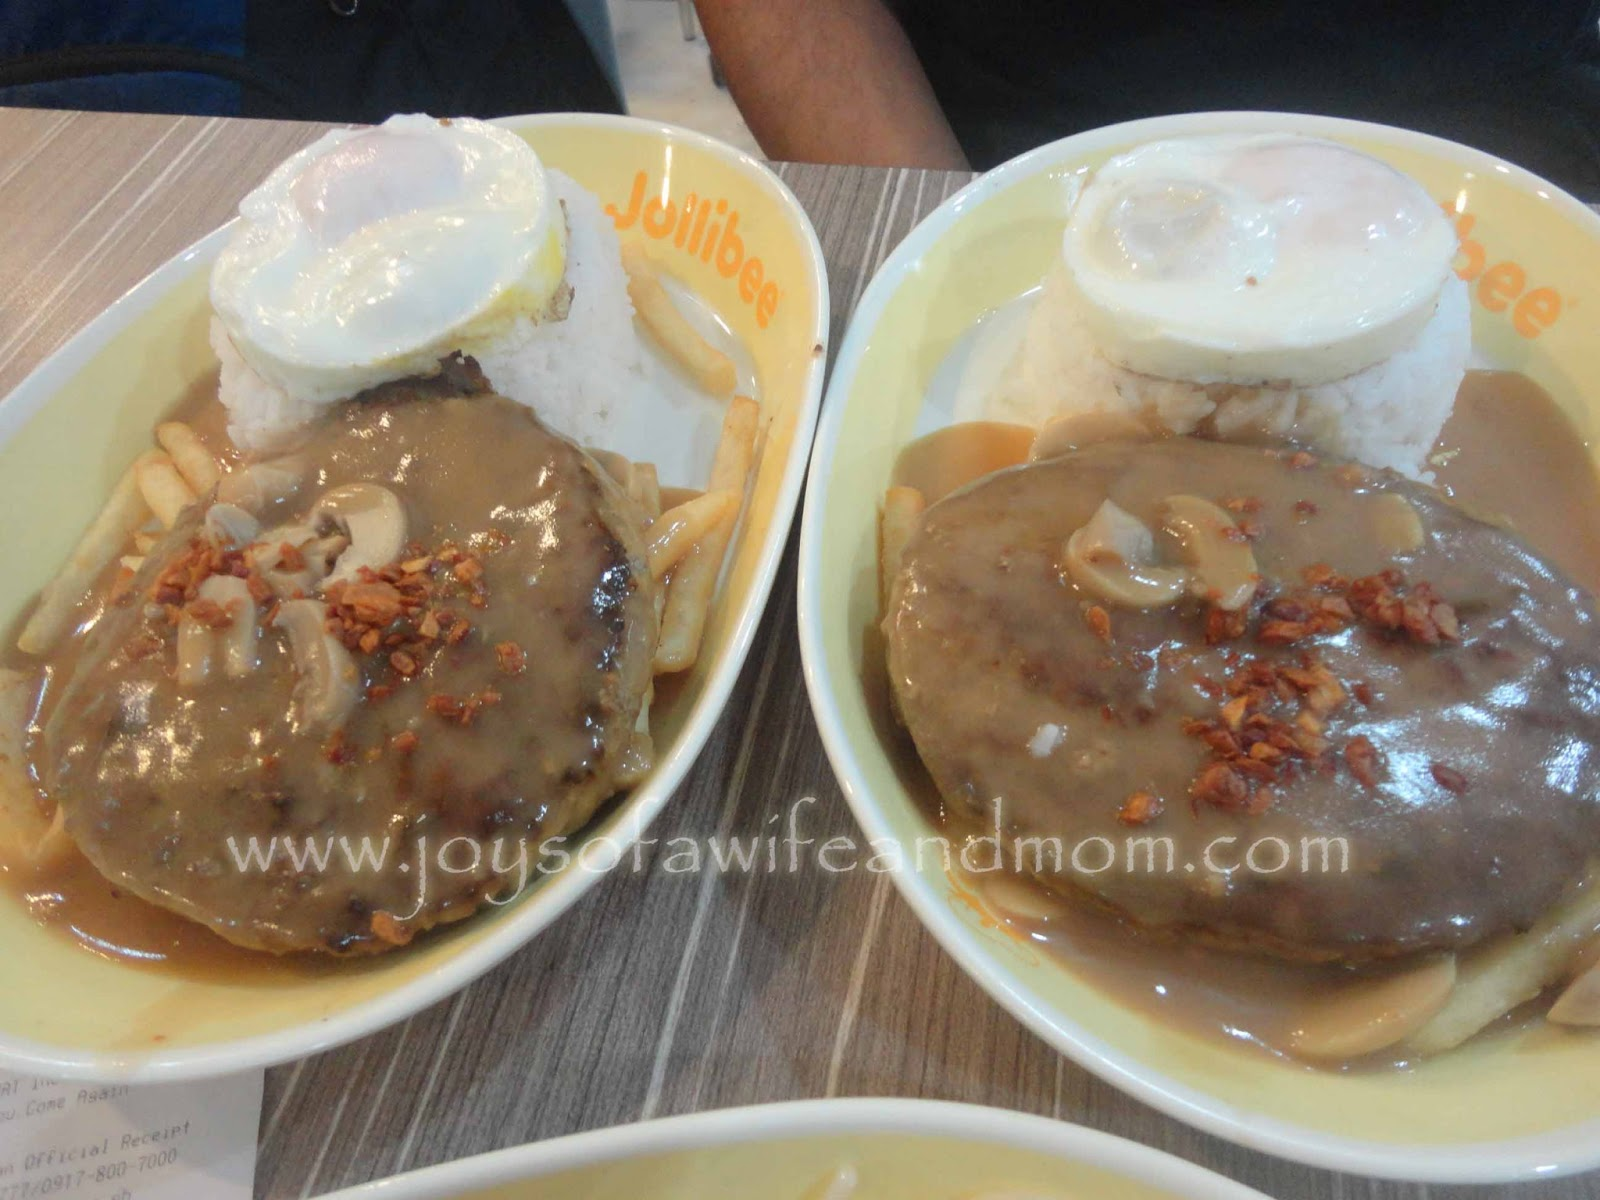 Jollibee's Ultimate Burger Steak Meal